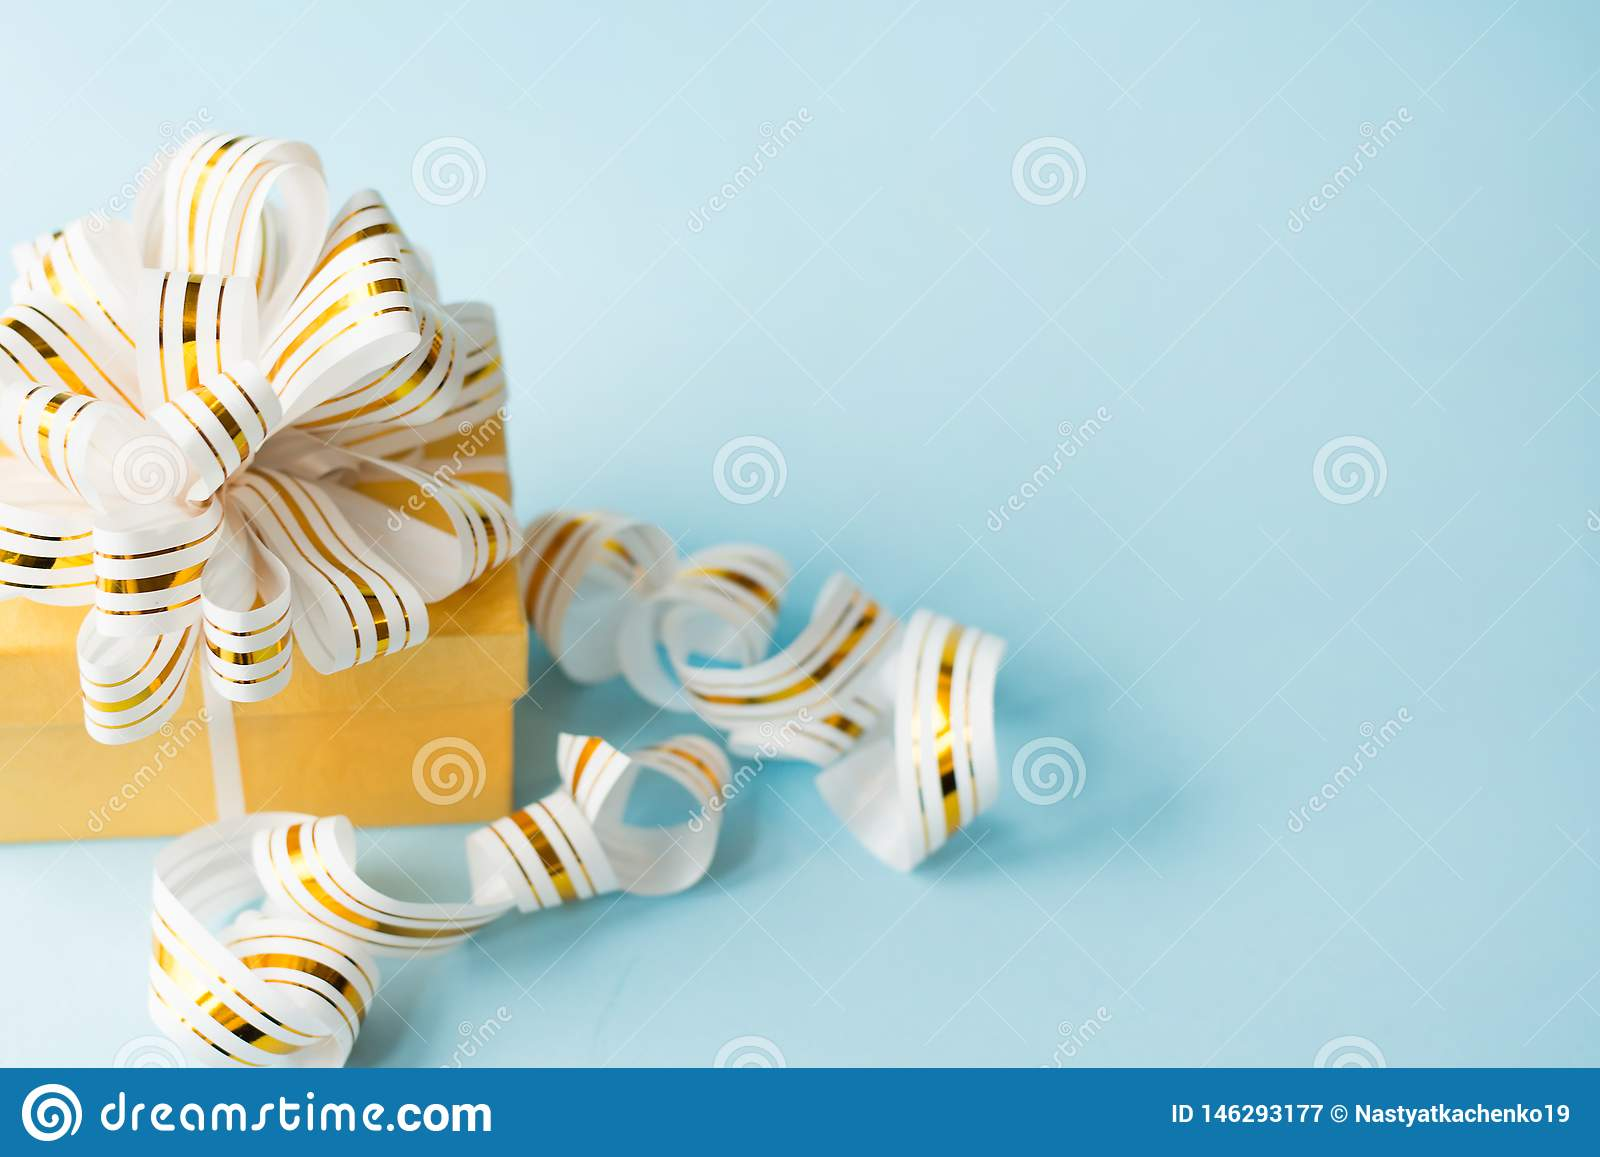 Gift wrapped with bow on blue background with copy space . flat lay greeting card